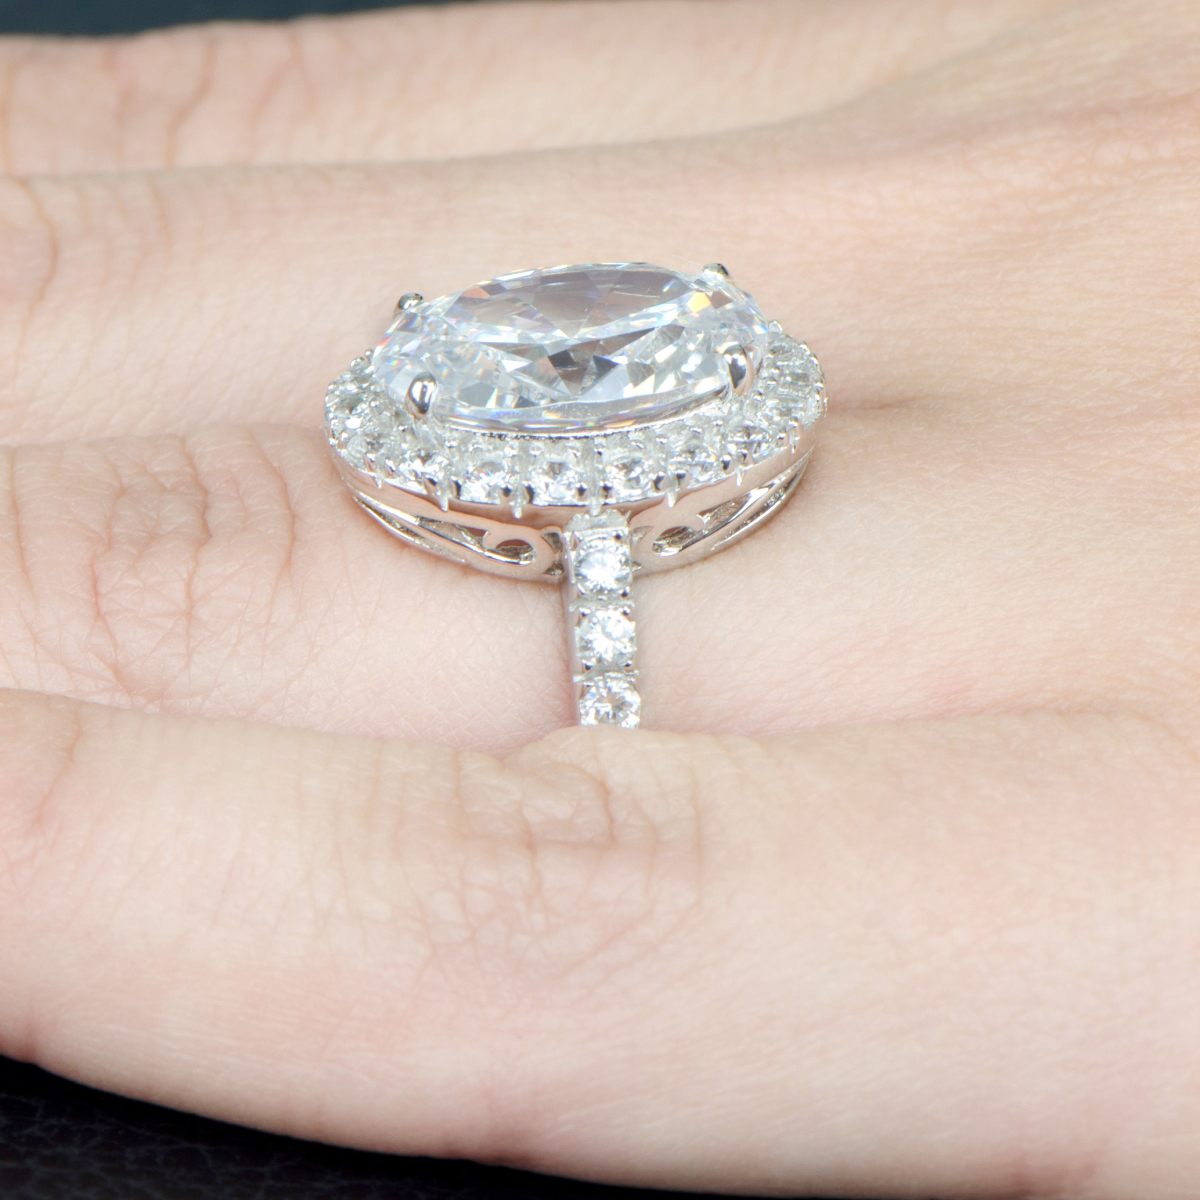 Anastasia s Oval Cut CZ Wedding Ring with Halo 8 Carats